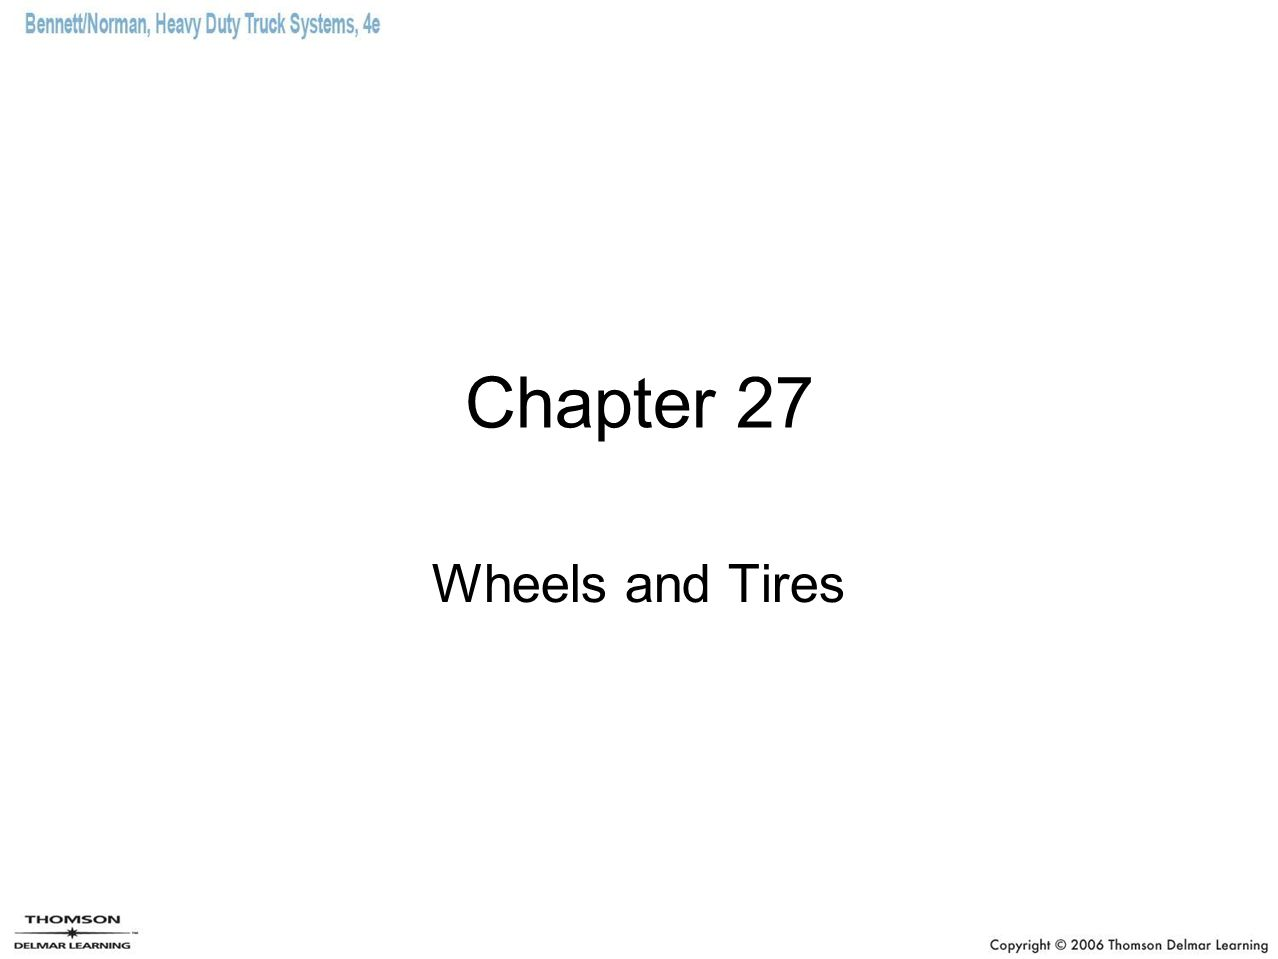 Chapter 27 Wheels and Tires